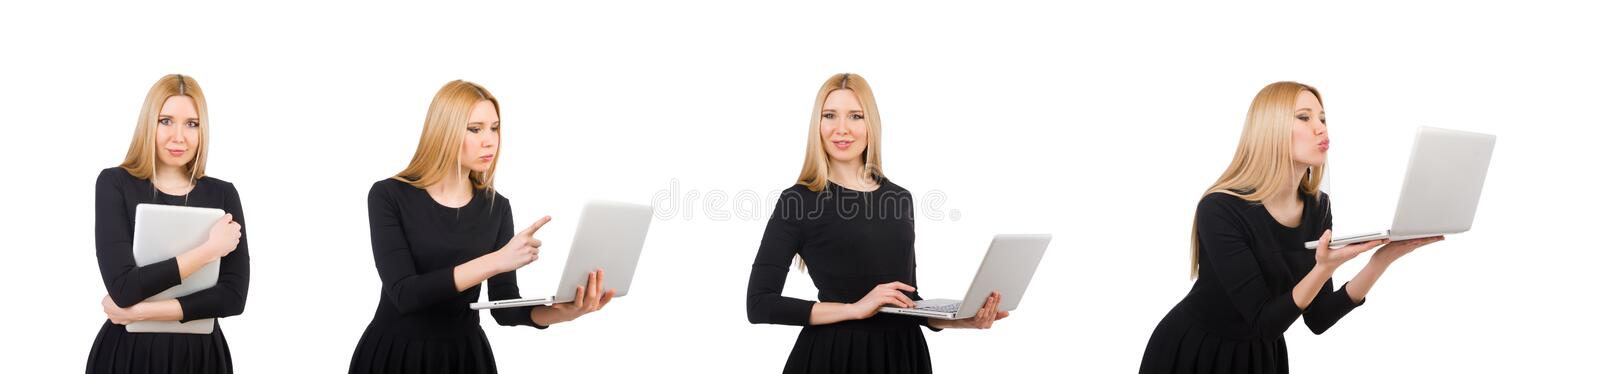 Woman businesswoman in business concept royalty free stock photo